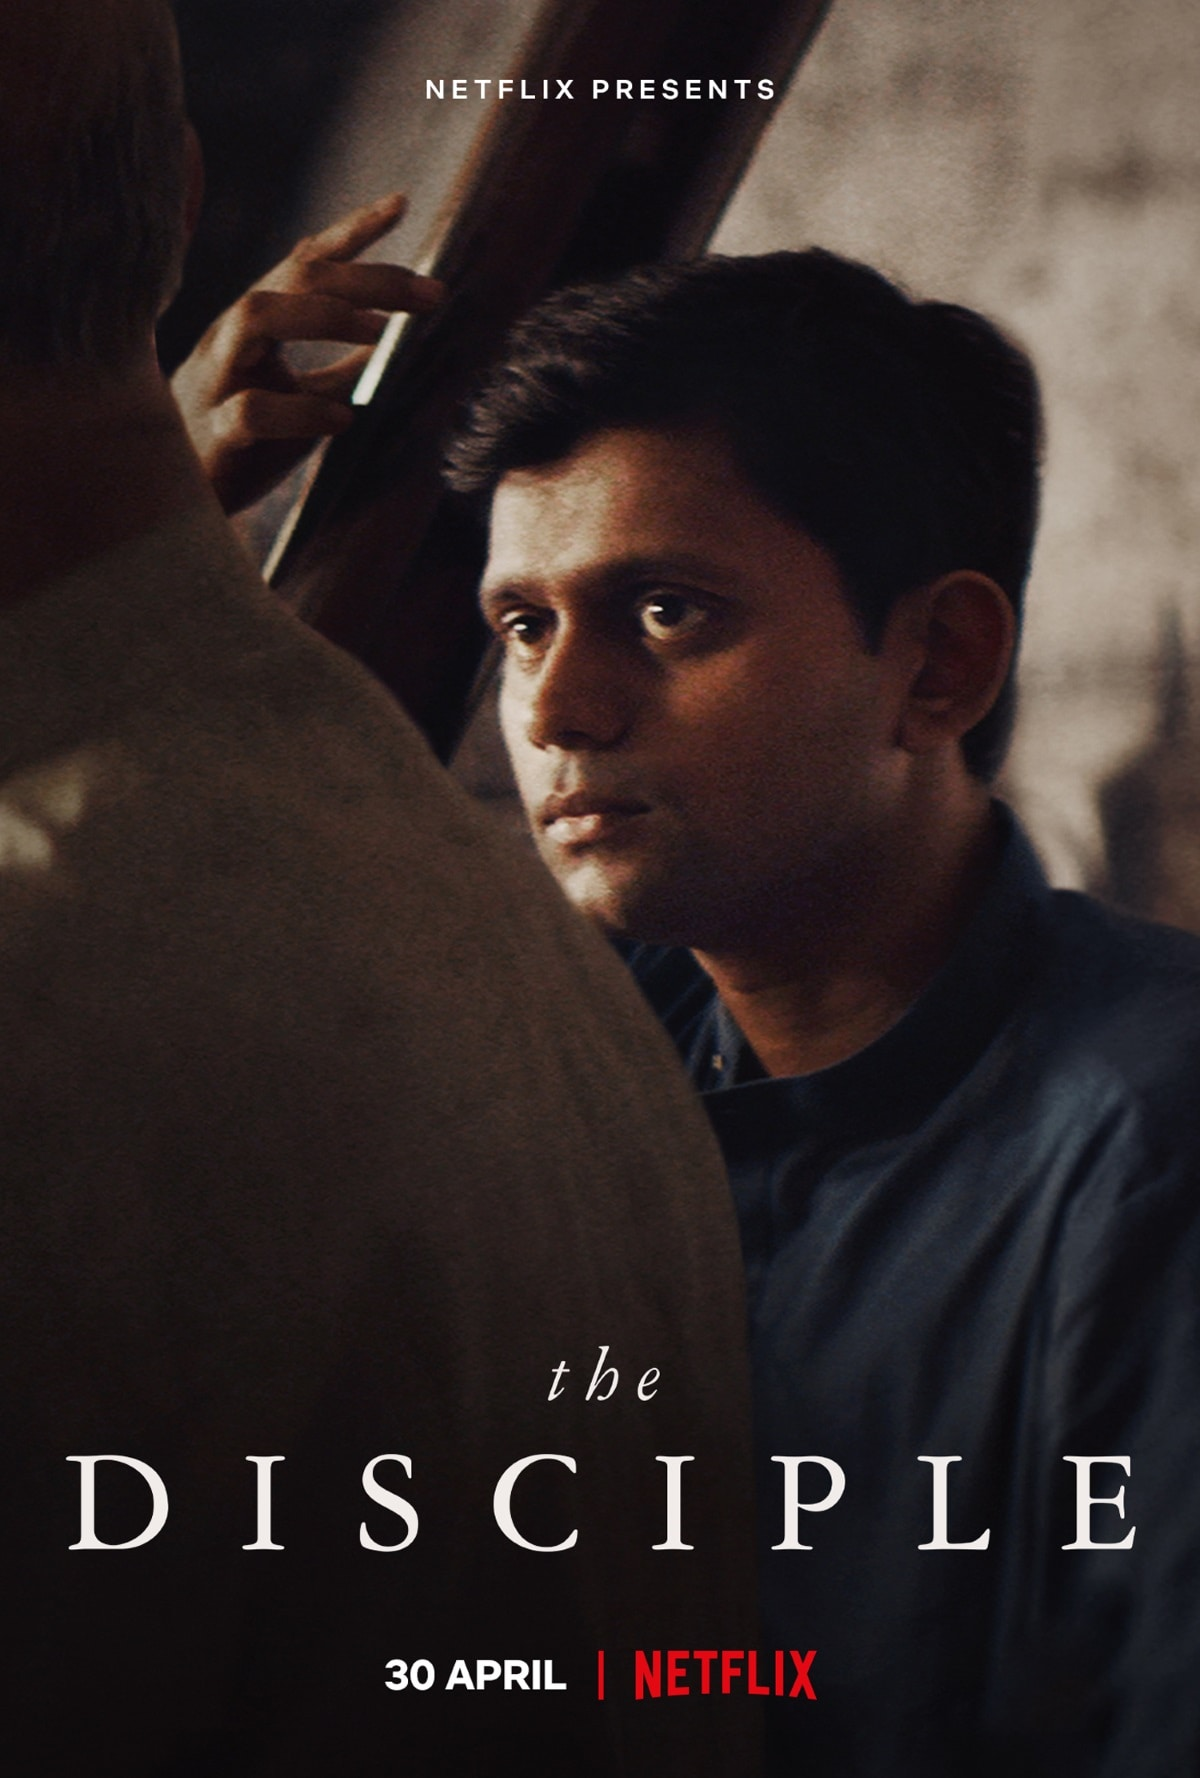 the disciple poster netflix the disciple poster netflix